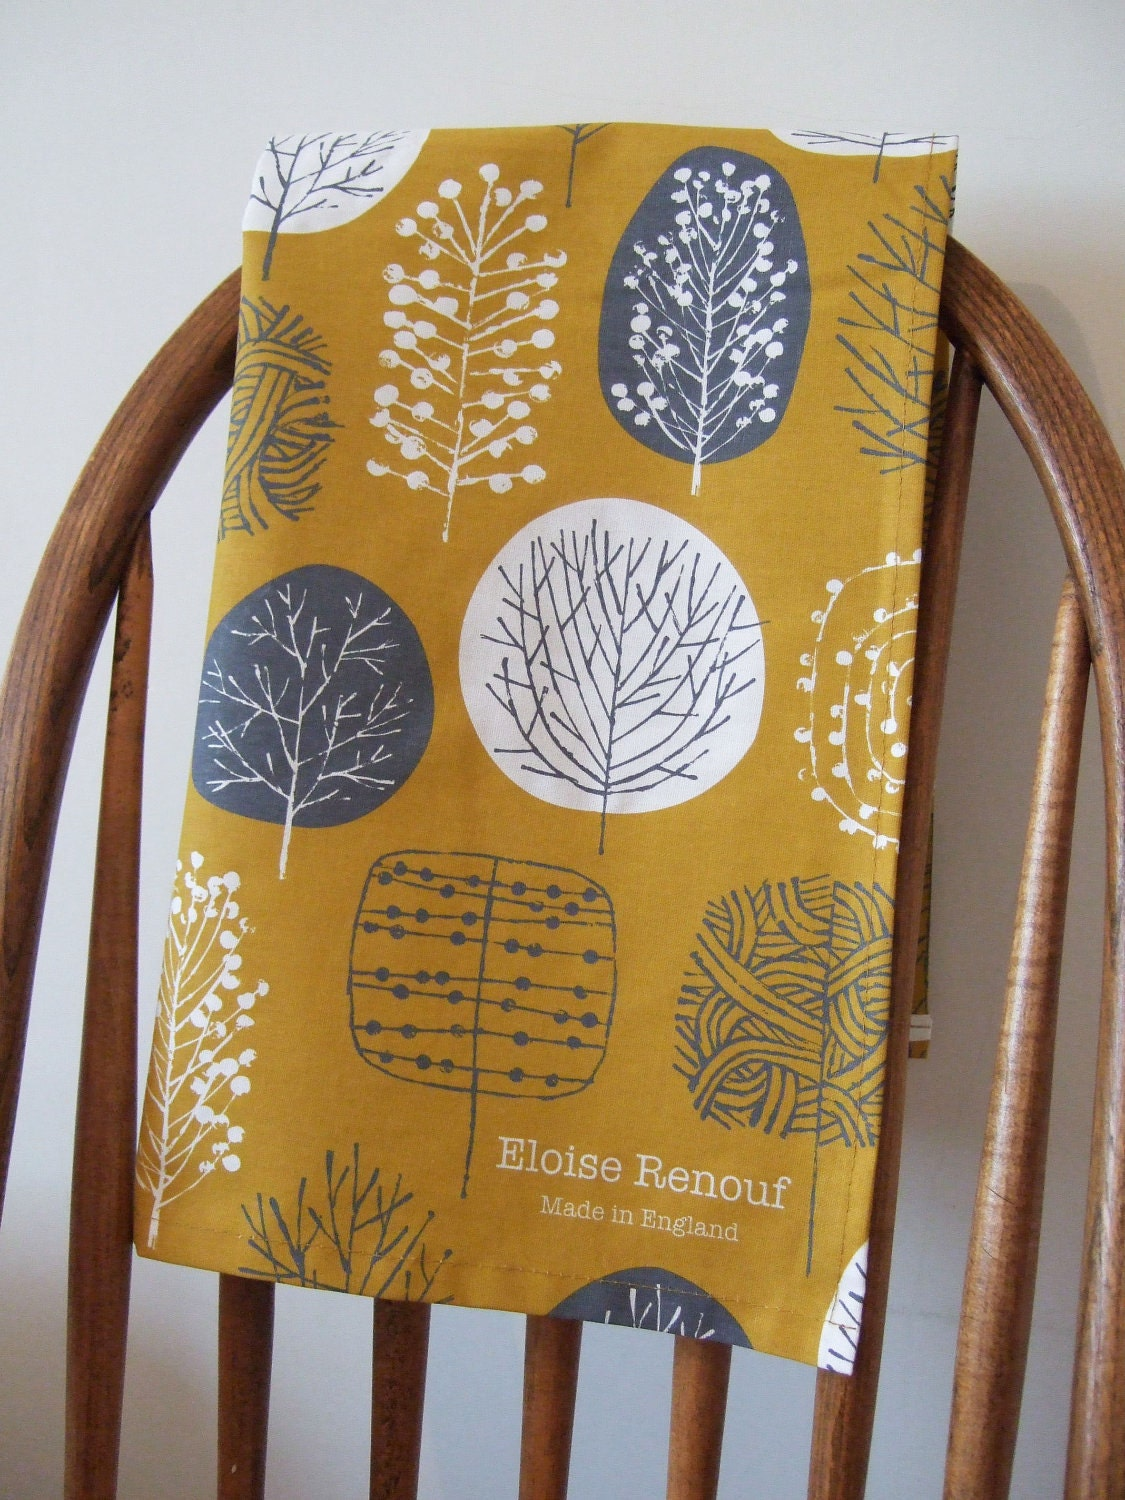 Trees Tea Towel In Mustard And Charcoal. Outdoor Bar Stool. Remodeling Apps. Duraceramic. Antique Executive Desk. Water Fountains Indoor. Weathertite Windows. Diamond Spa. Coastal Home